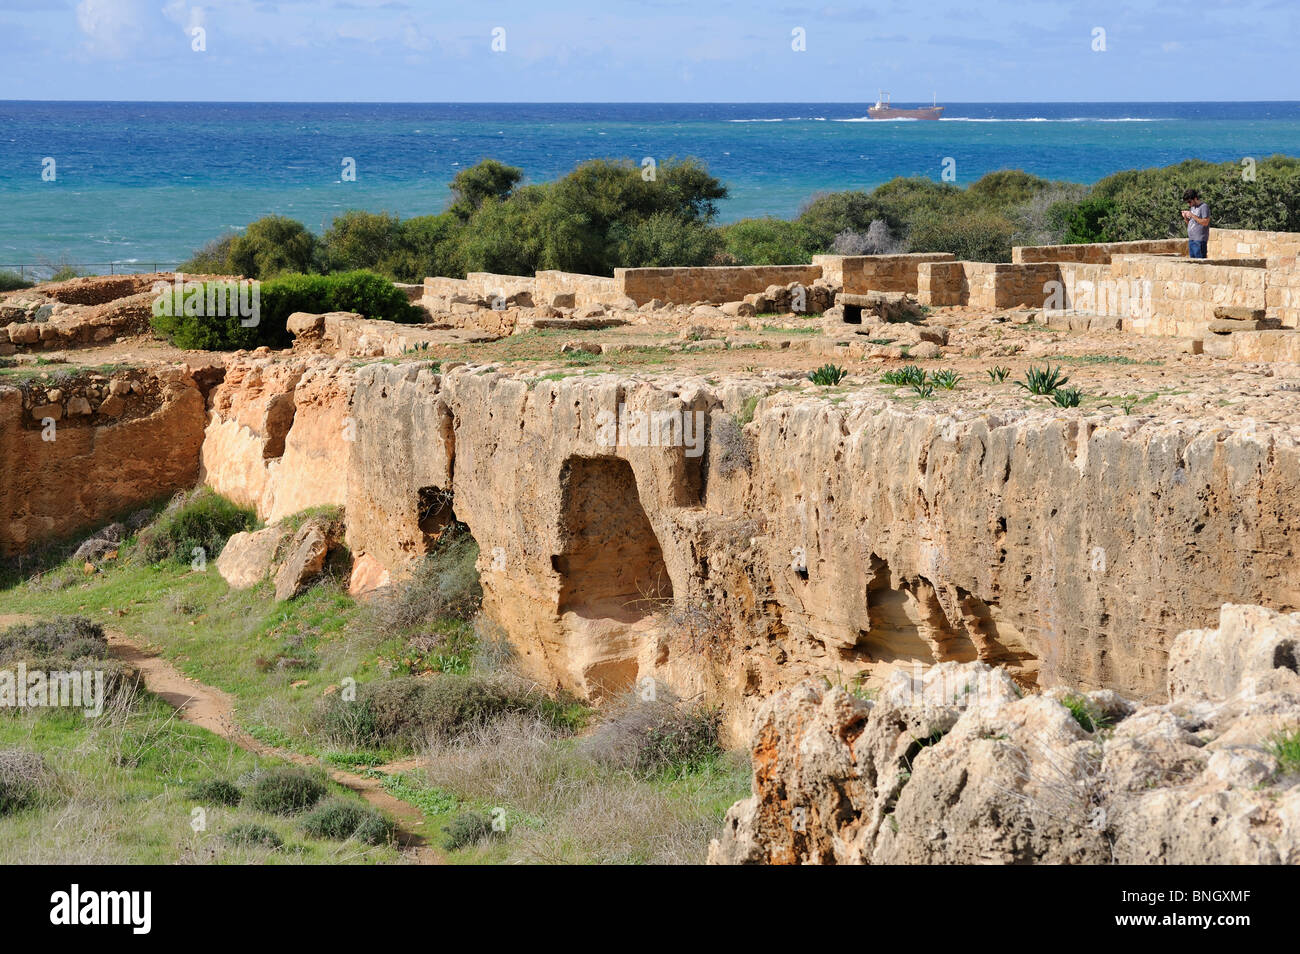 Tombs of the Kings are an early necropolis in Paphos Cyprus burial niches Ancient Greek burial site 300 BC Ptolemaic - Stock Image